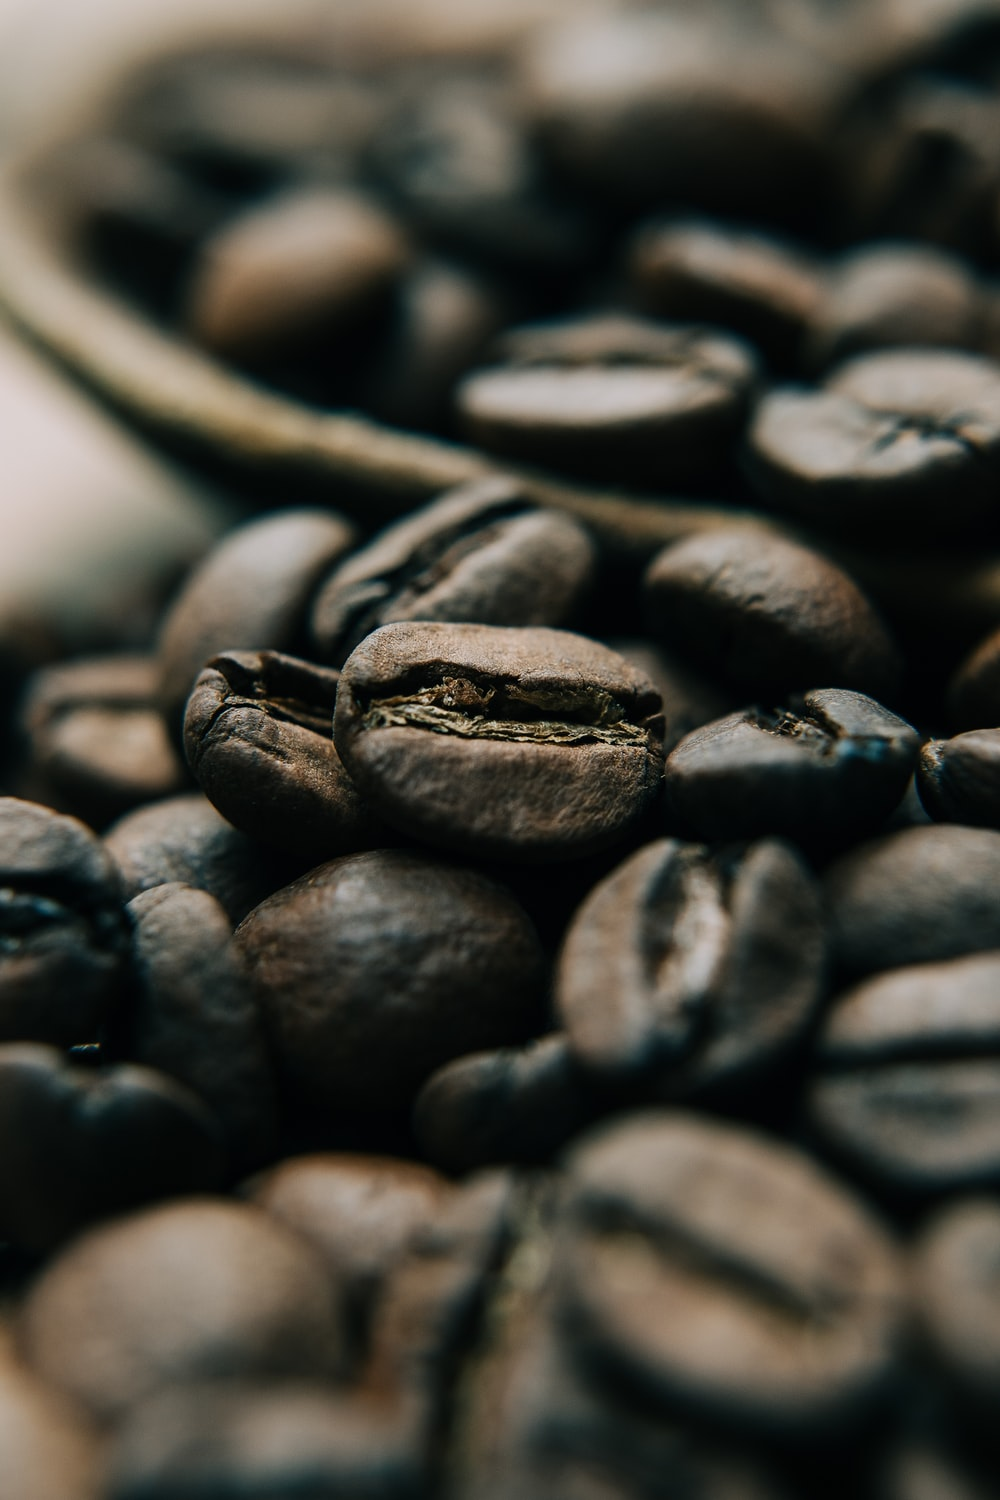 black coffee beans in close up photography